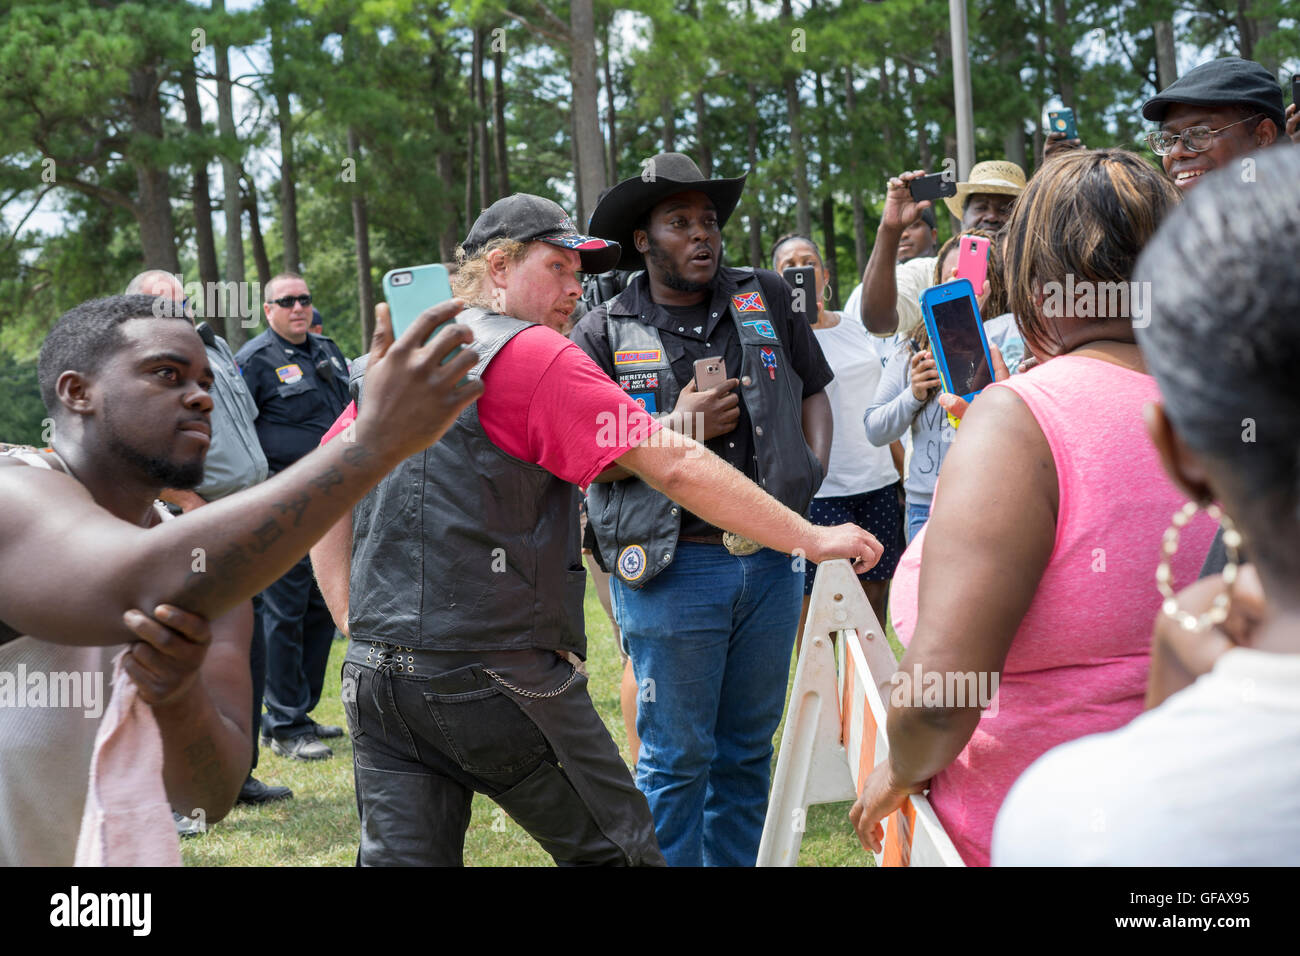 Cell phones were out and words were said at a rally in Tupelo, Ms. on Saturday, July 30th. Folks from Black Lives - Stock Image